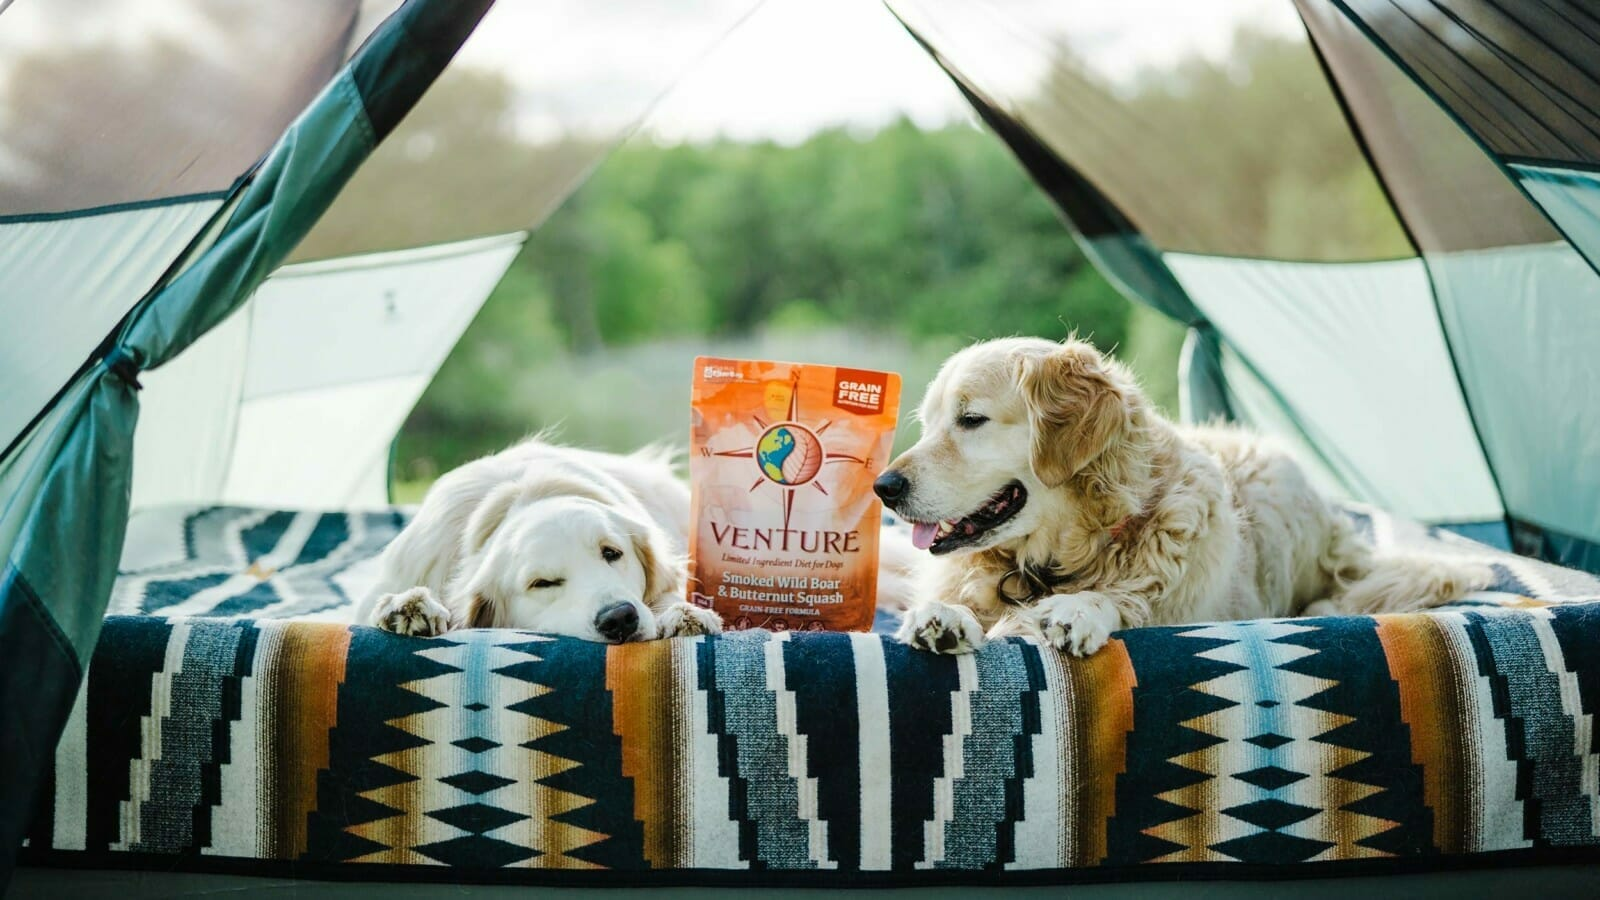 Two dogs laying in a tent next to a bag of Venture pet food